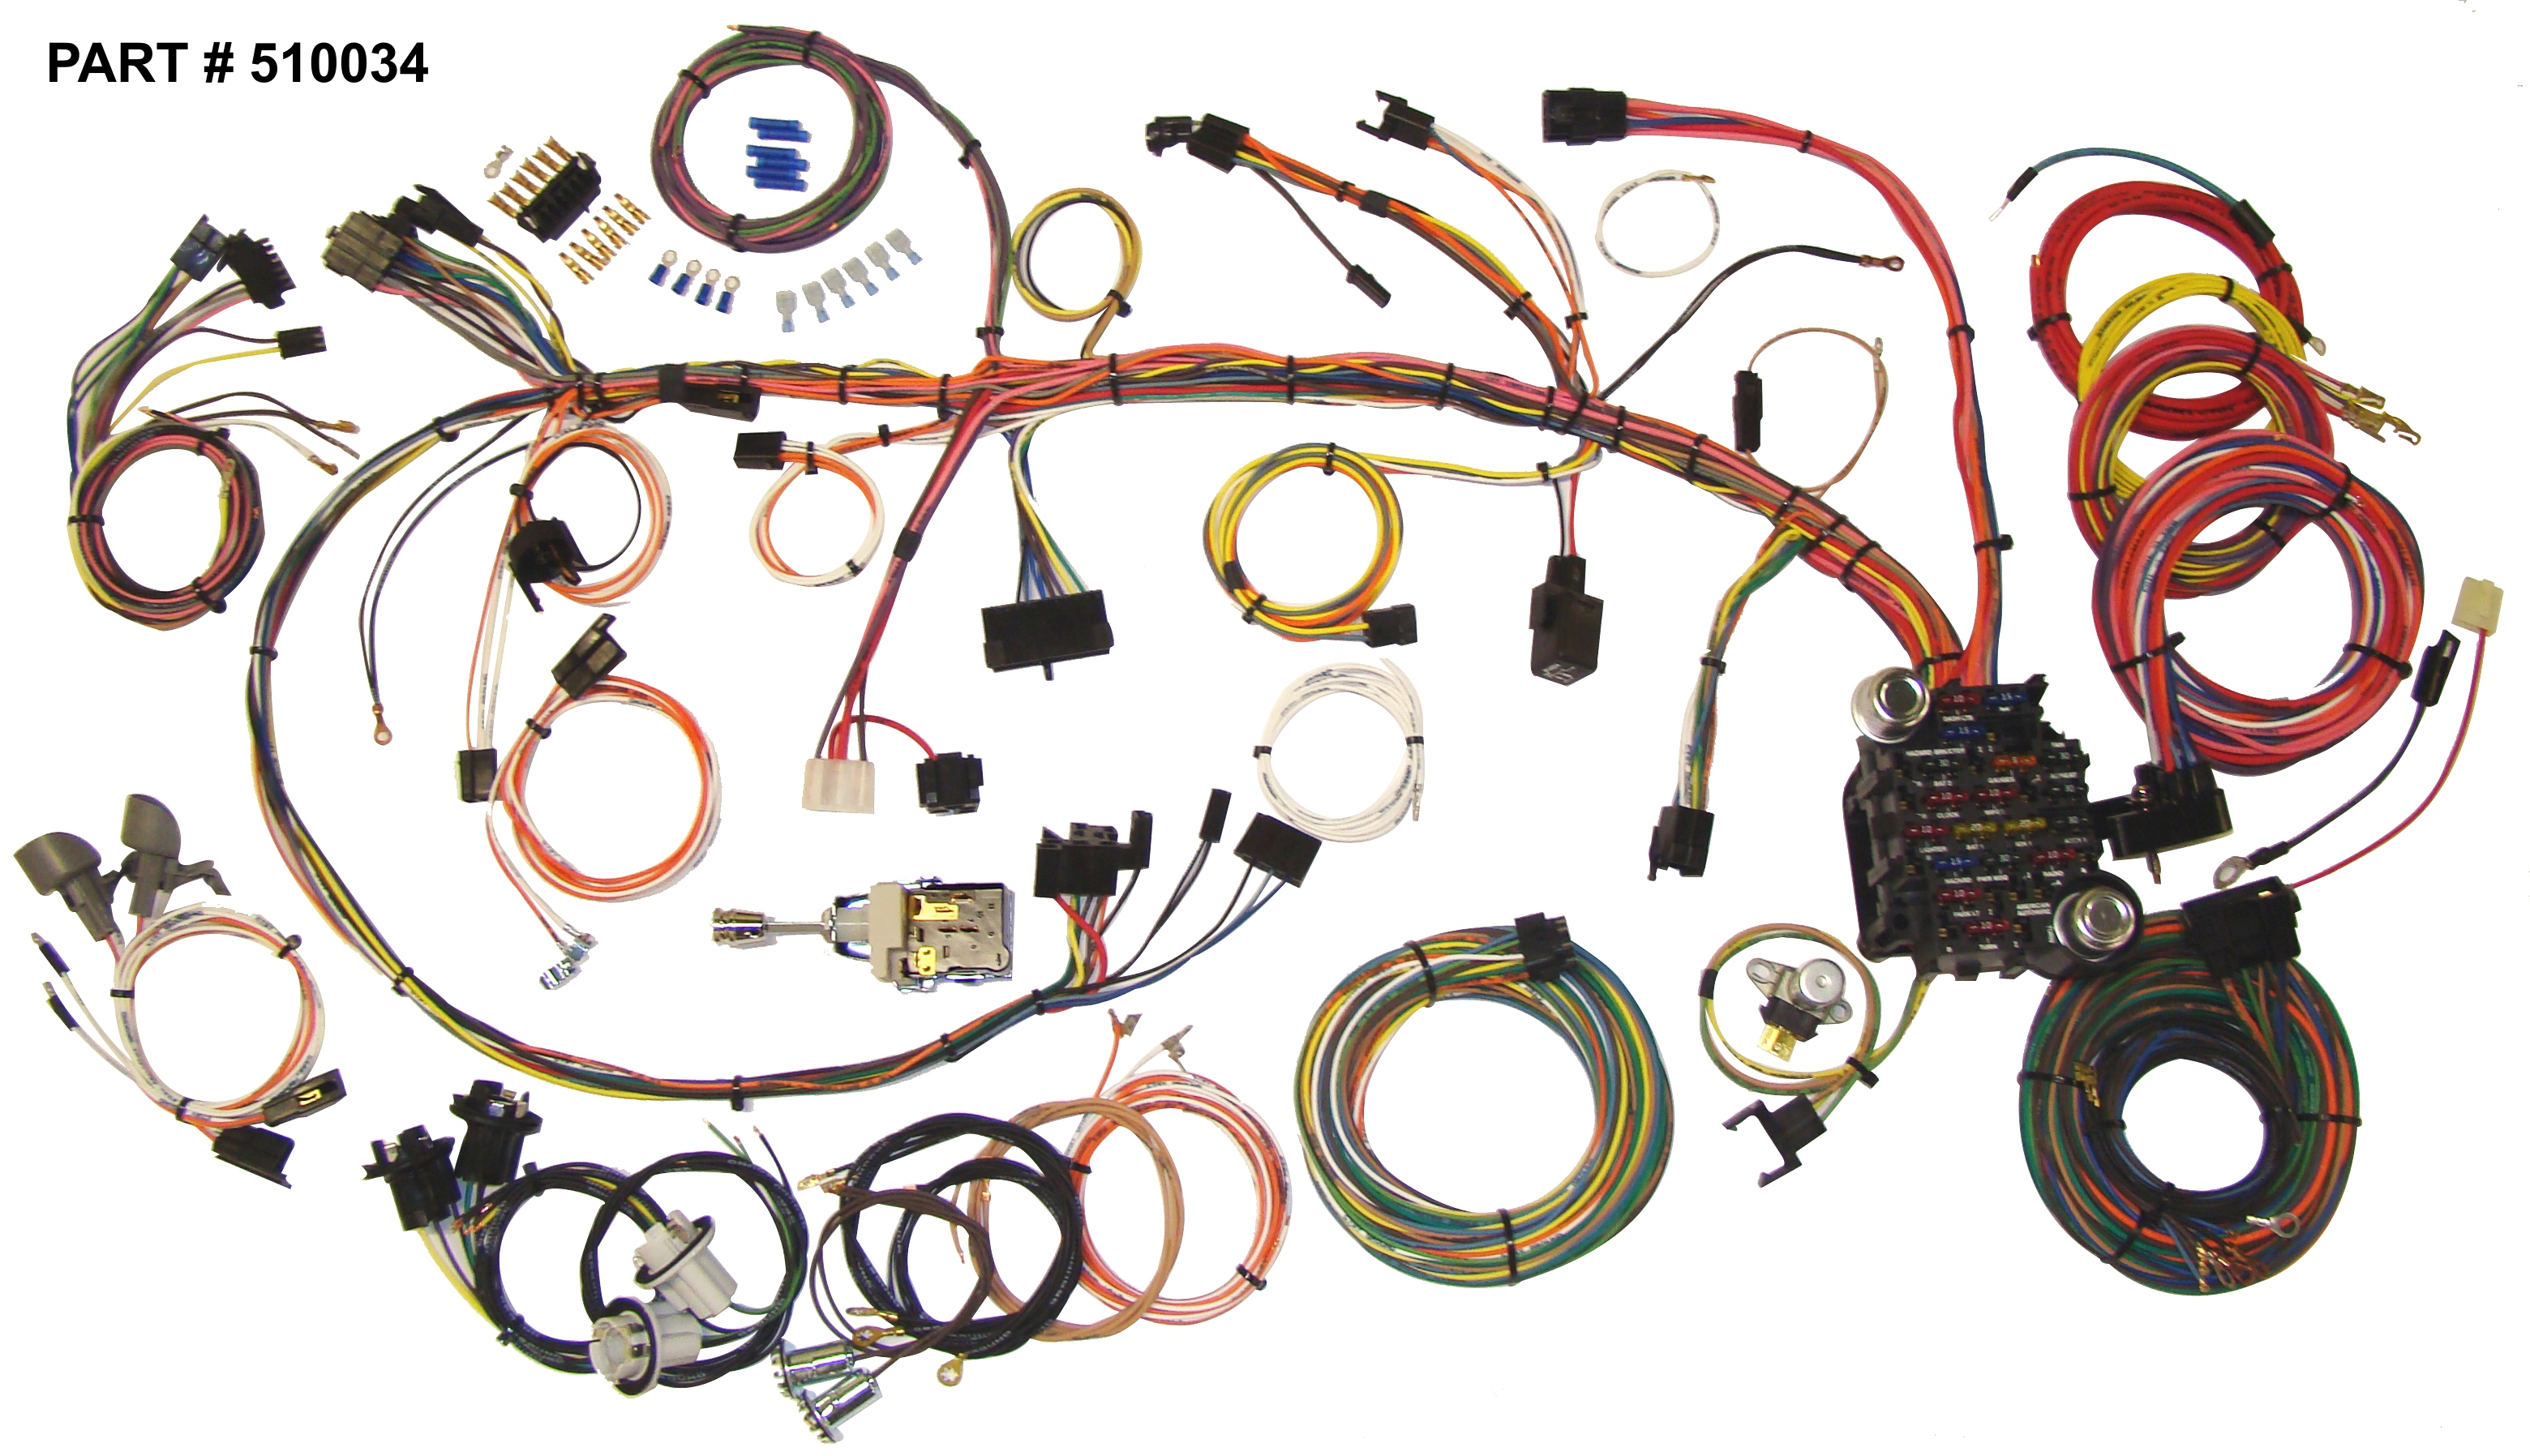 1970 Chevy Camaro Wiring Harness Diagrams Drag Car El Camino Diagram 1973 Chevrolet Restomod System 1979 73